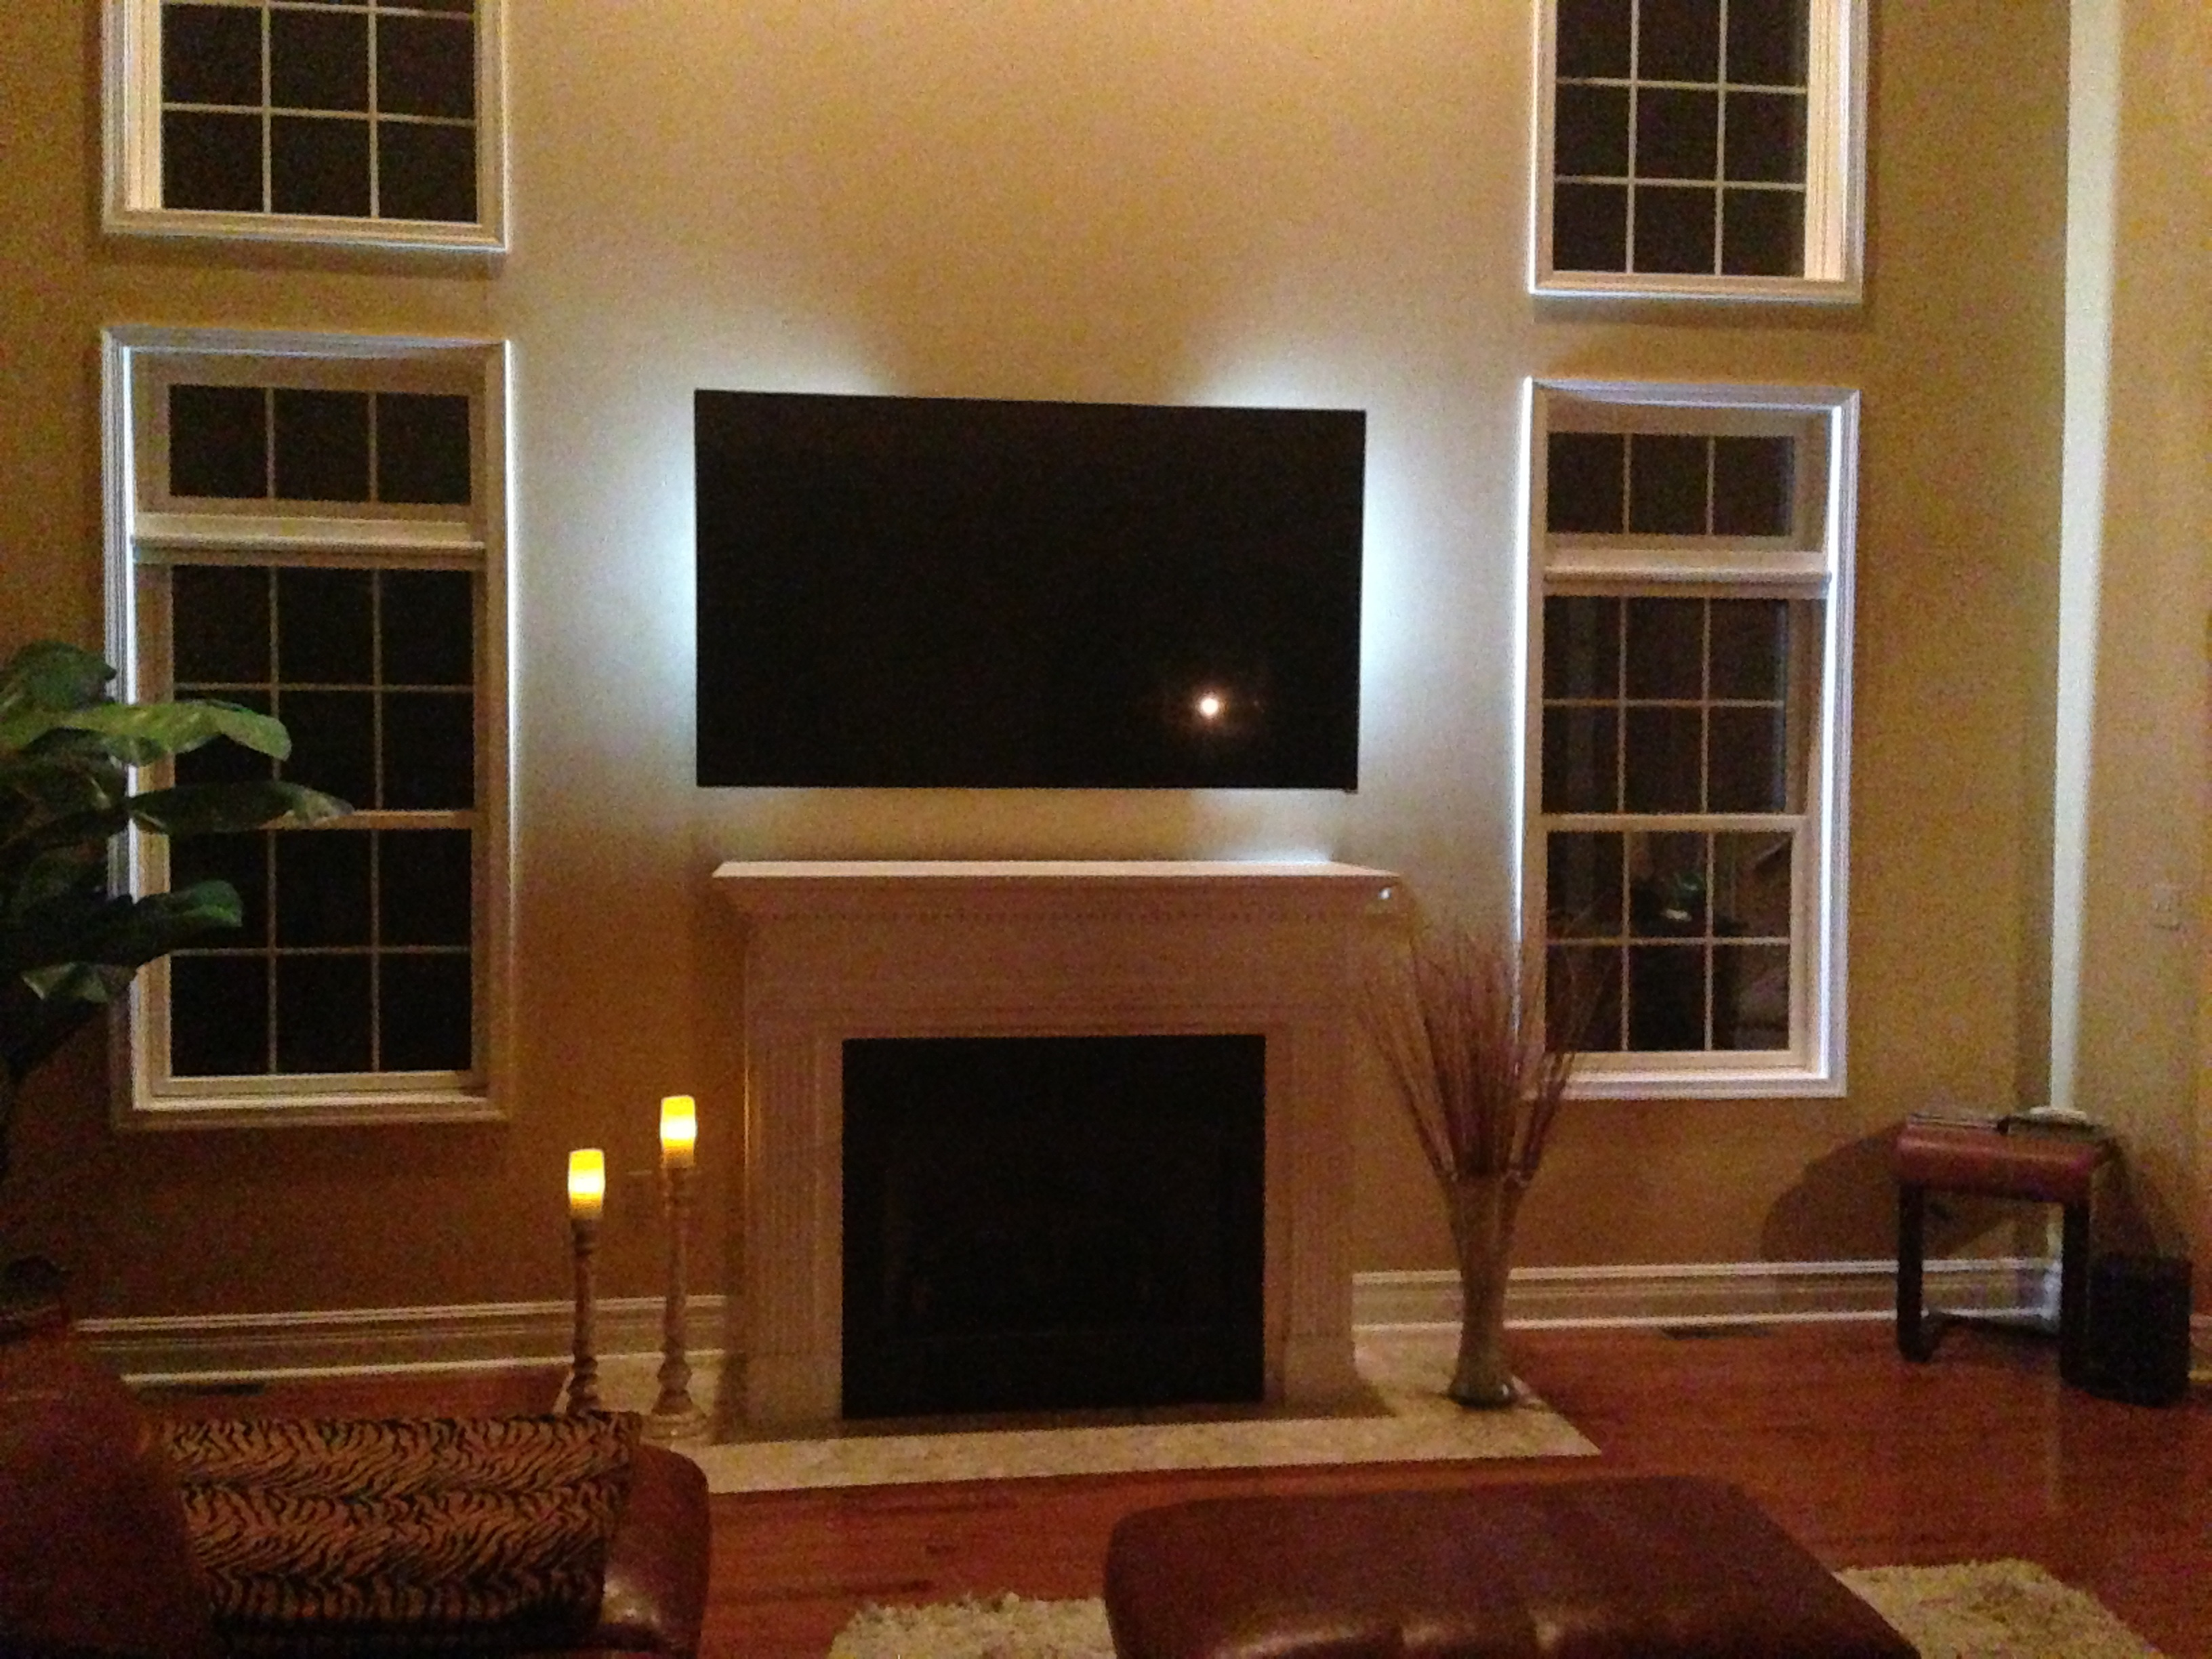 Tv Fireplace Where To Put Cable Box Great Ways To Hide